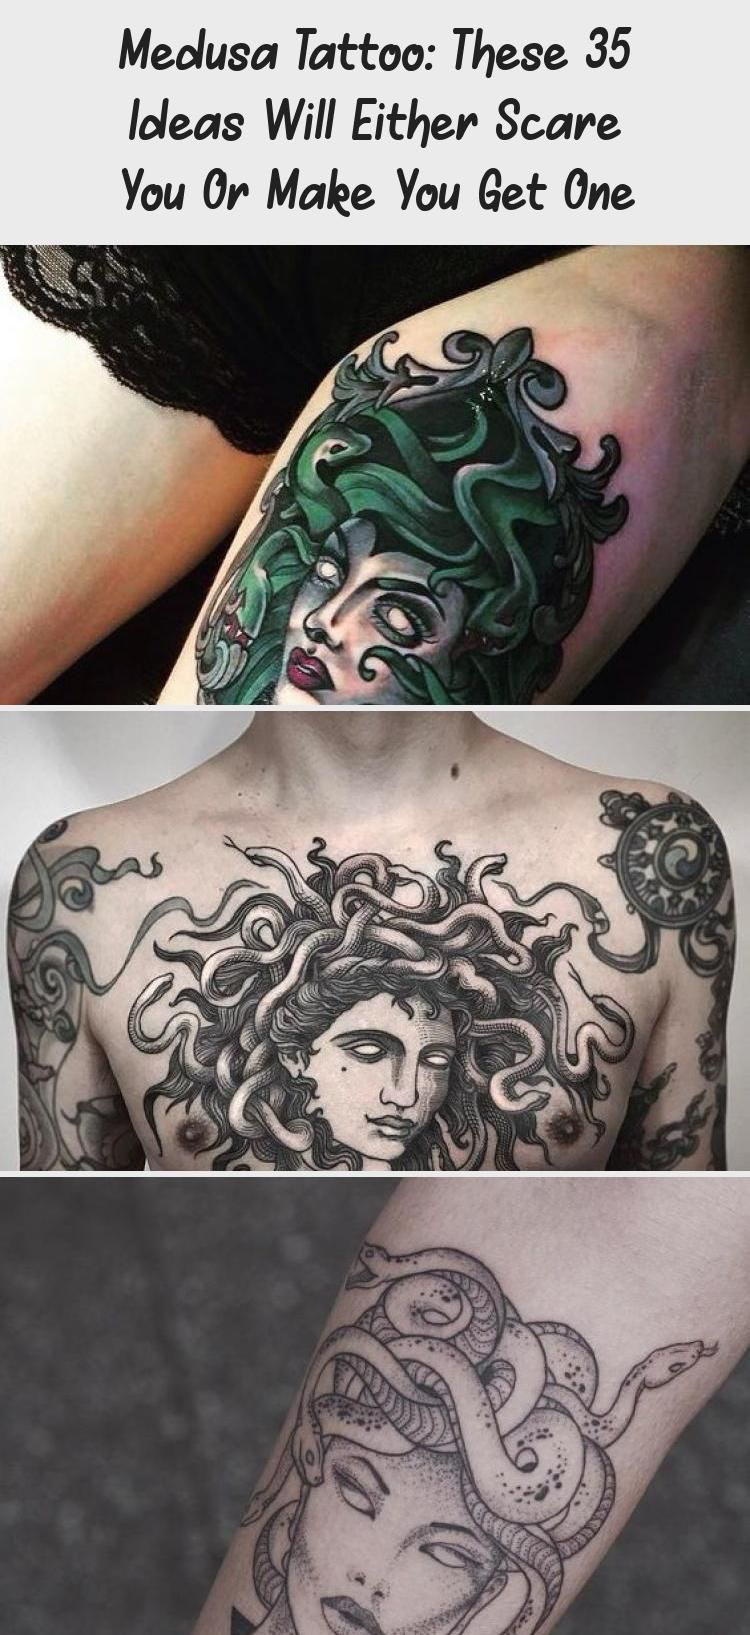 10+ Amazing Traditional medusa tattoo meaning ideas